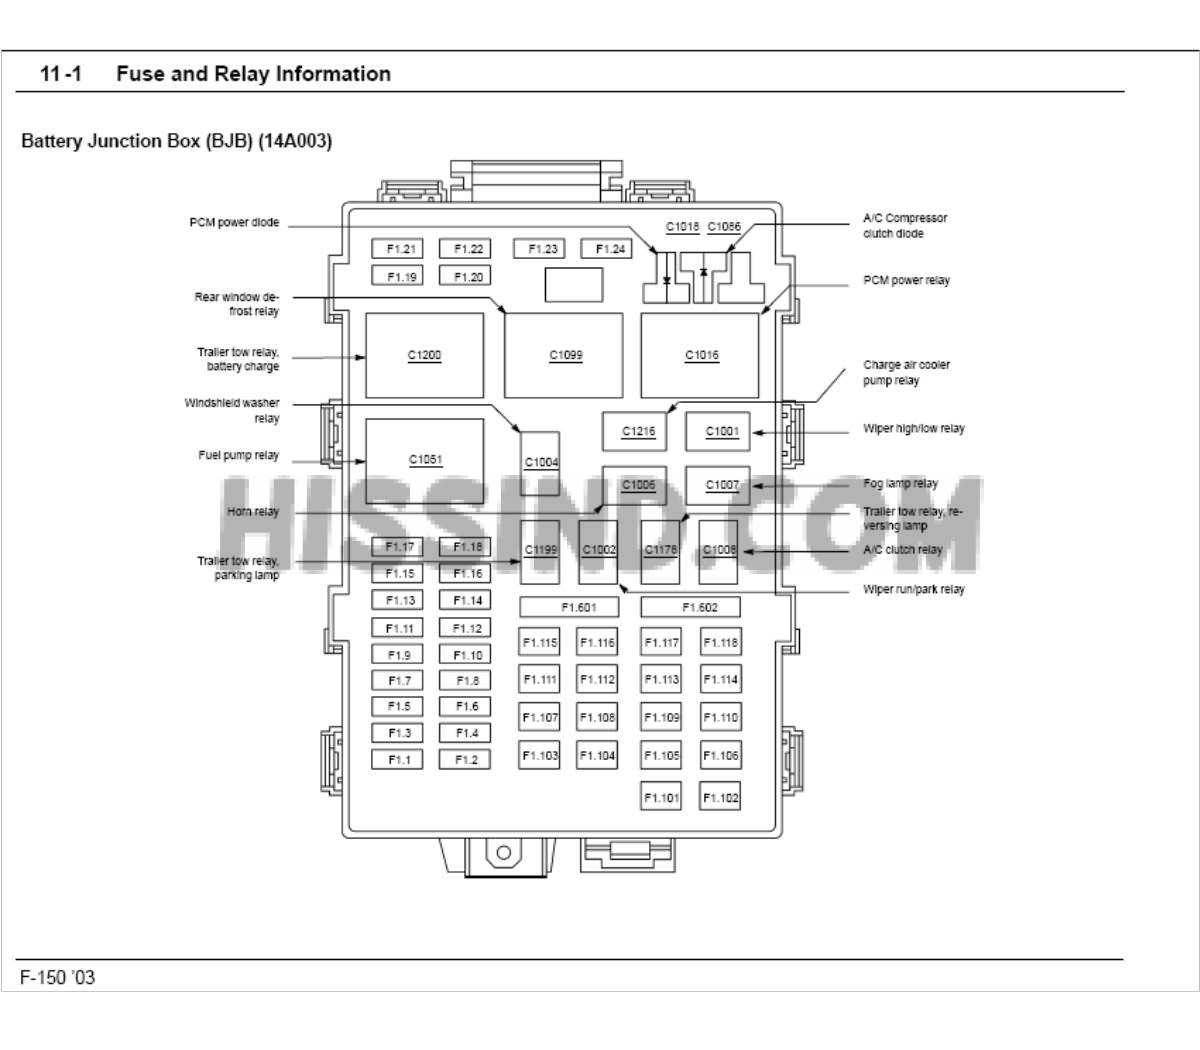 98 f150 alarm wiring diagram 2001 chevy silverado transmission 2000 ford fuse box engine bay